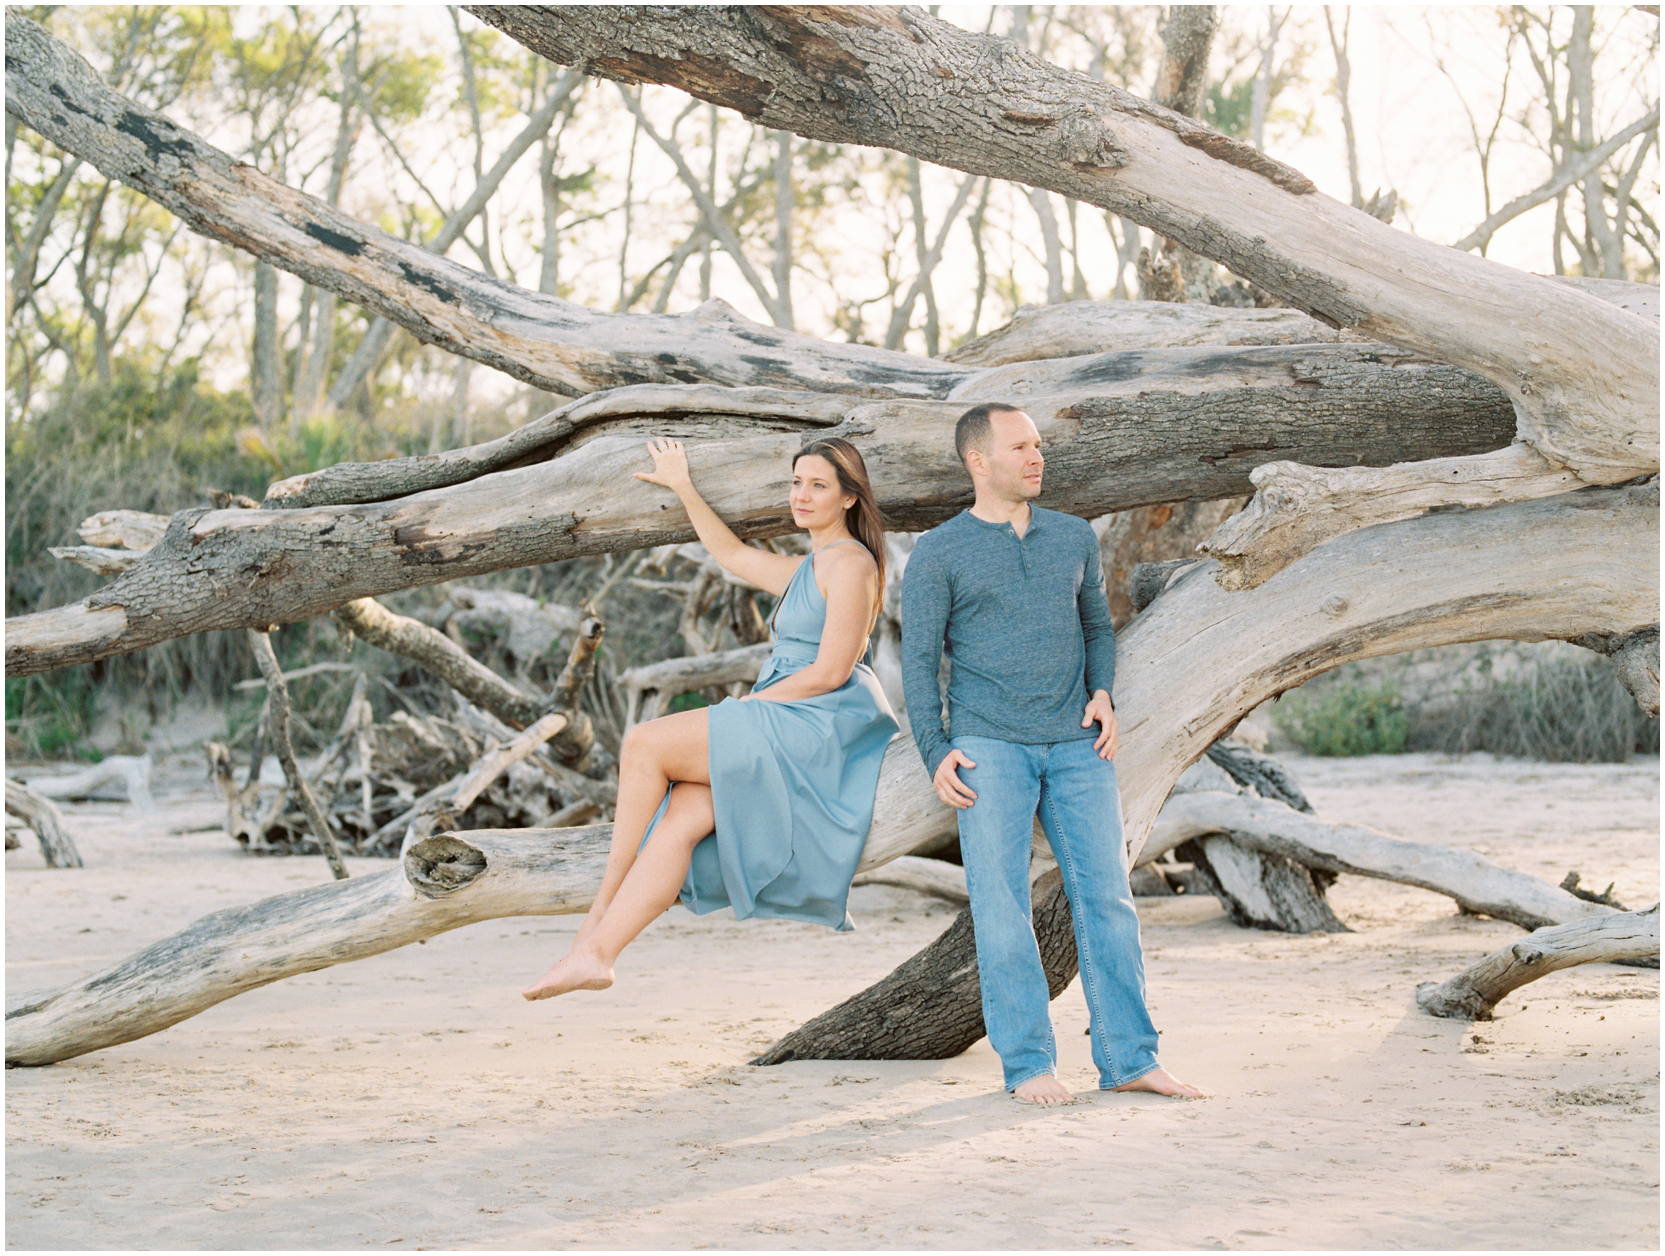 Lisa Silva Photography -Engagement Session at Big Talbot Island- Jacksonville and North East Florida Fine Art Film Photographer_0036.jpg